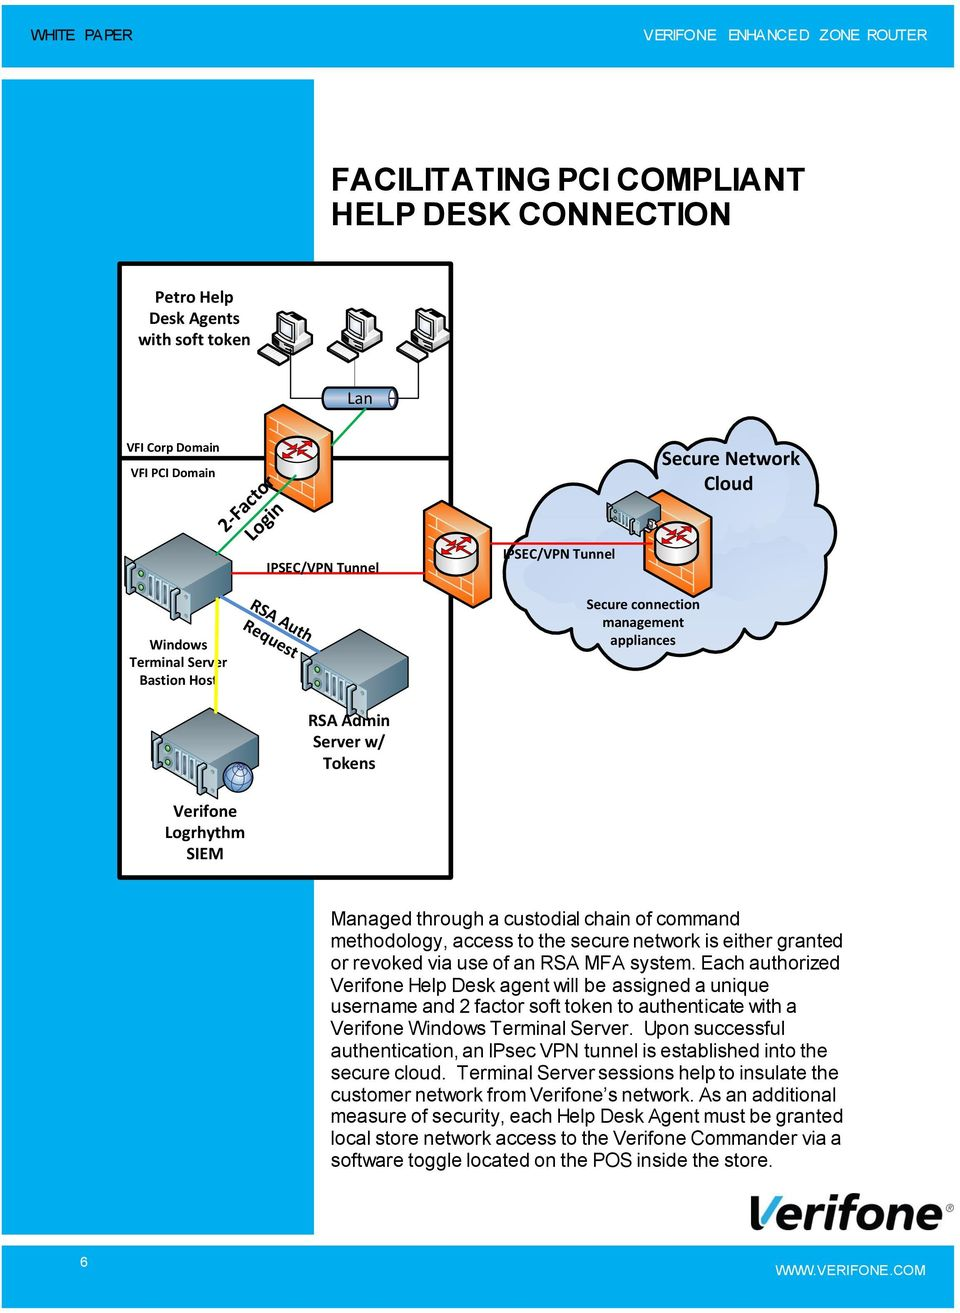 access to the secure network is either granted or revoked via use of an RSA MFA system.